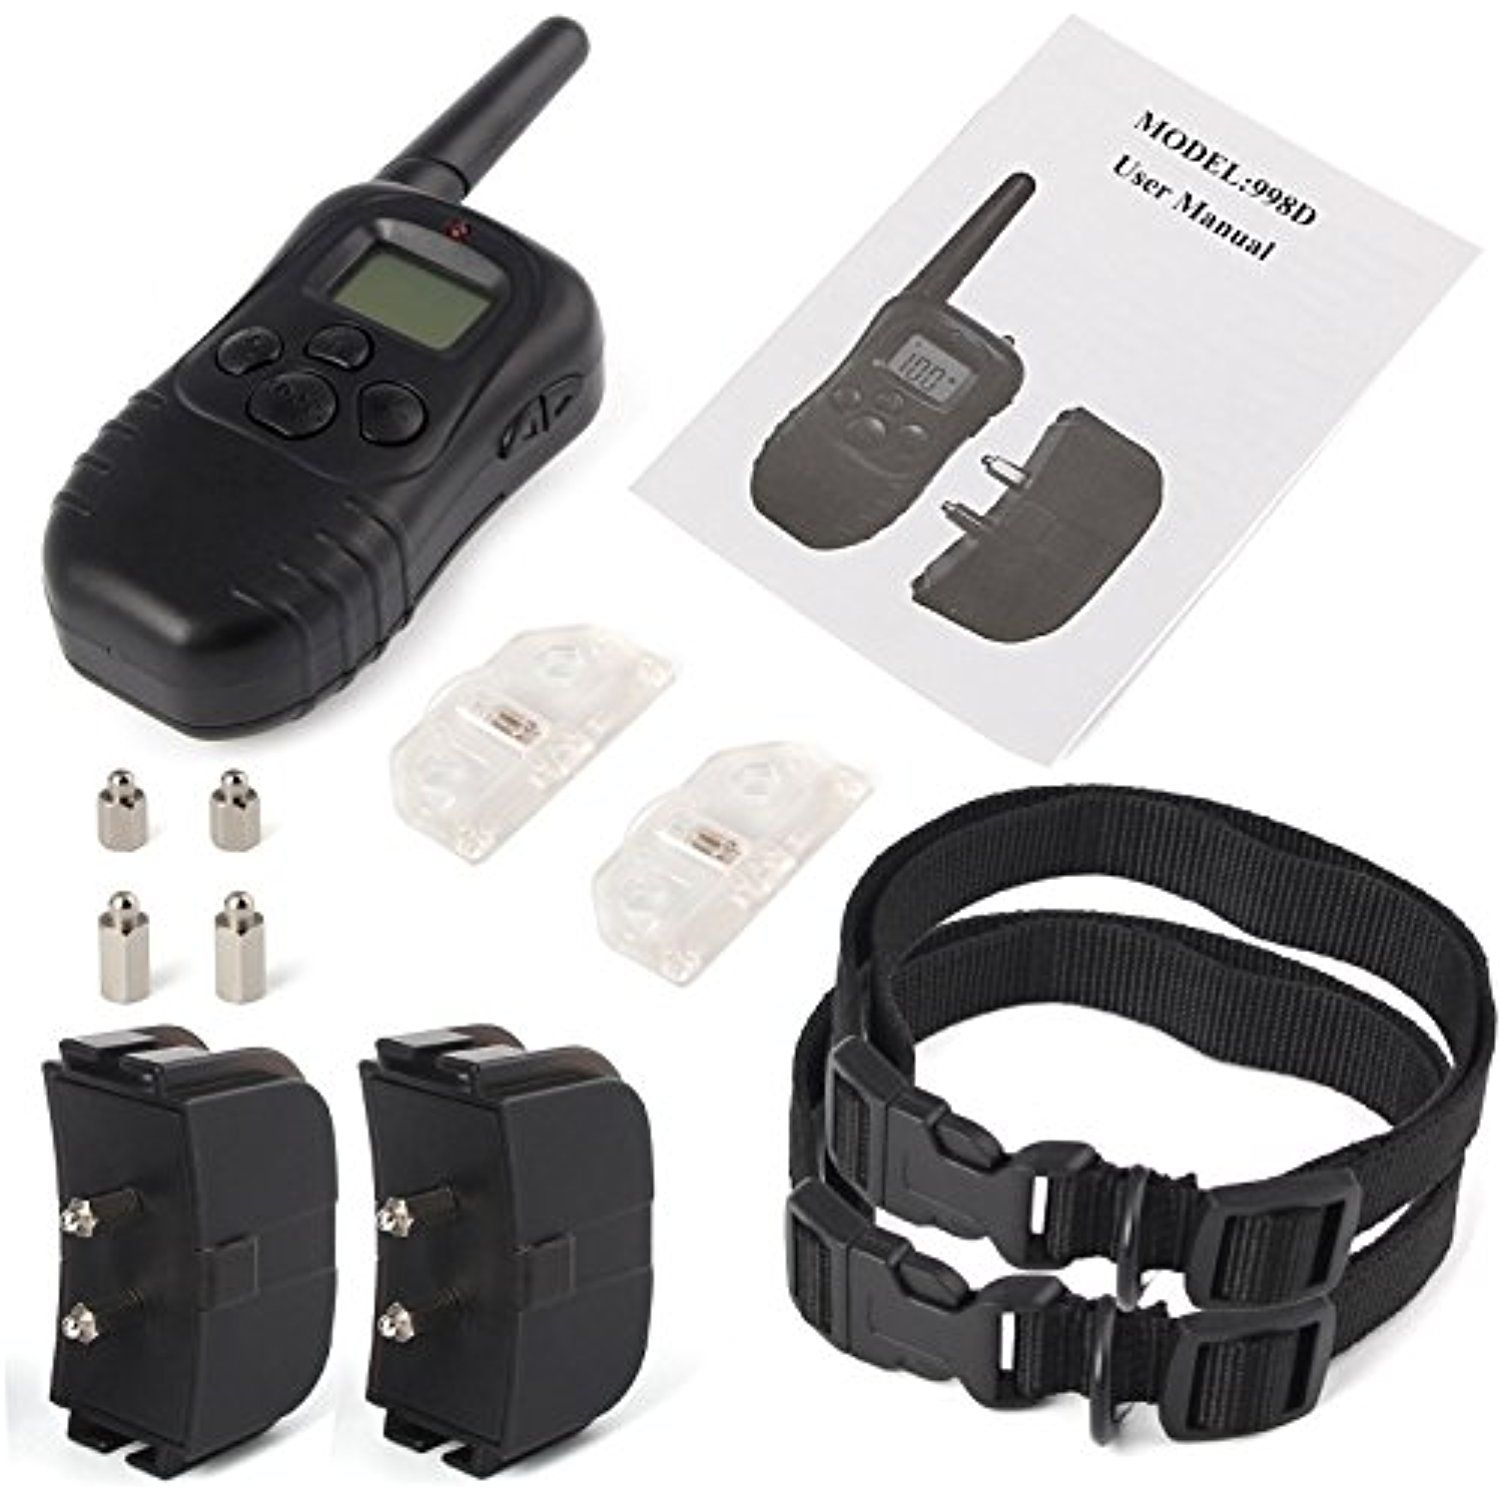 Details About New Electric Digital Pet Dog Remote Control Training